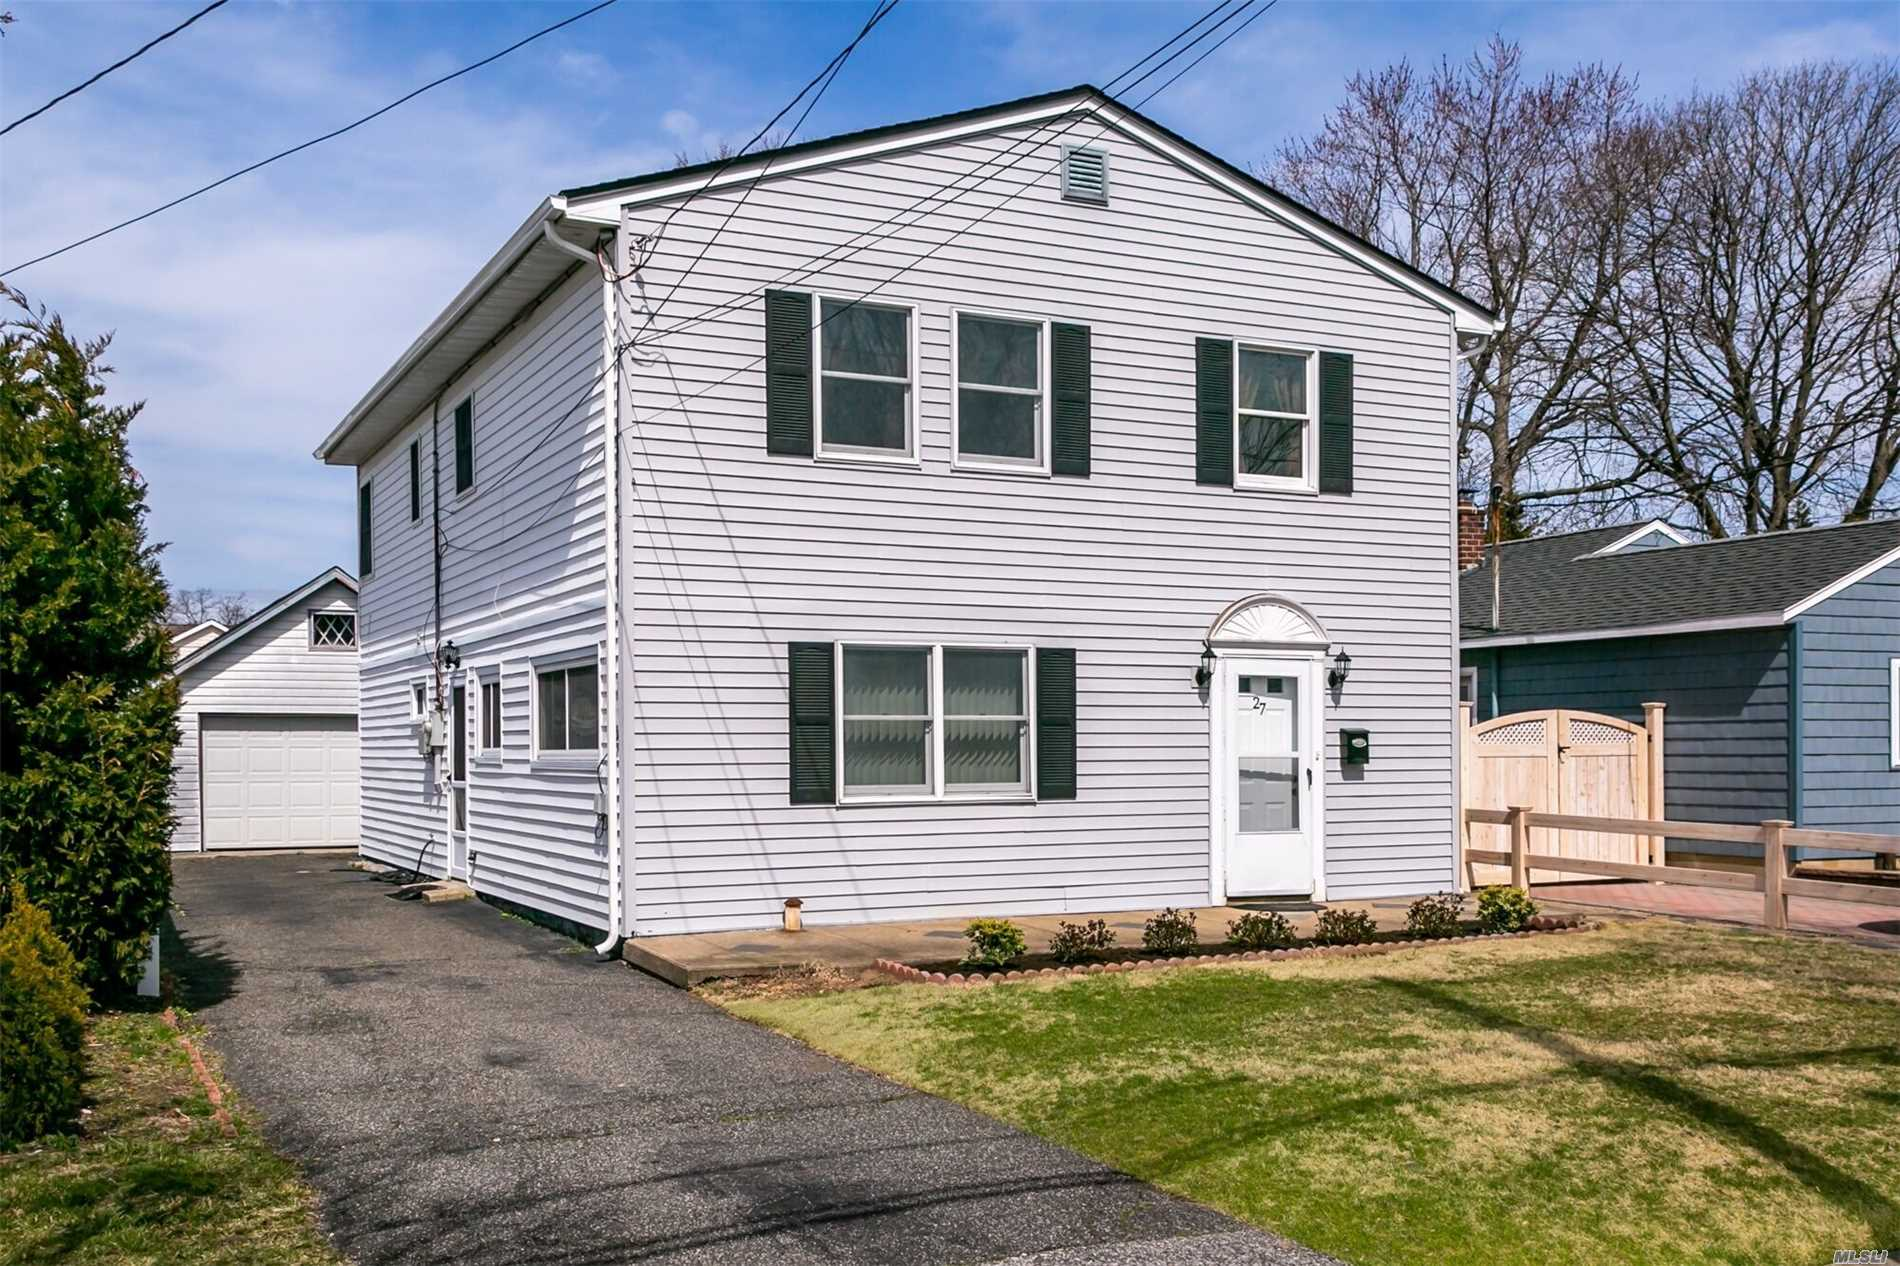 Spacious Expanded Ranch situated Mid-block. Brand New Roof, Updated Kitchens and Baths, Detached 1.5 Car Garage. All Large Rooms, New Carpets in Upstairs Bedrooms, Possible Mother/Daughter with proper permits.  New owners must apply.